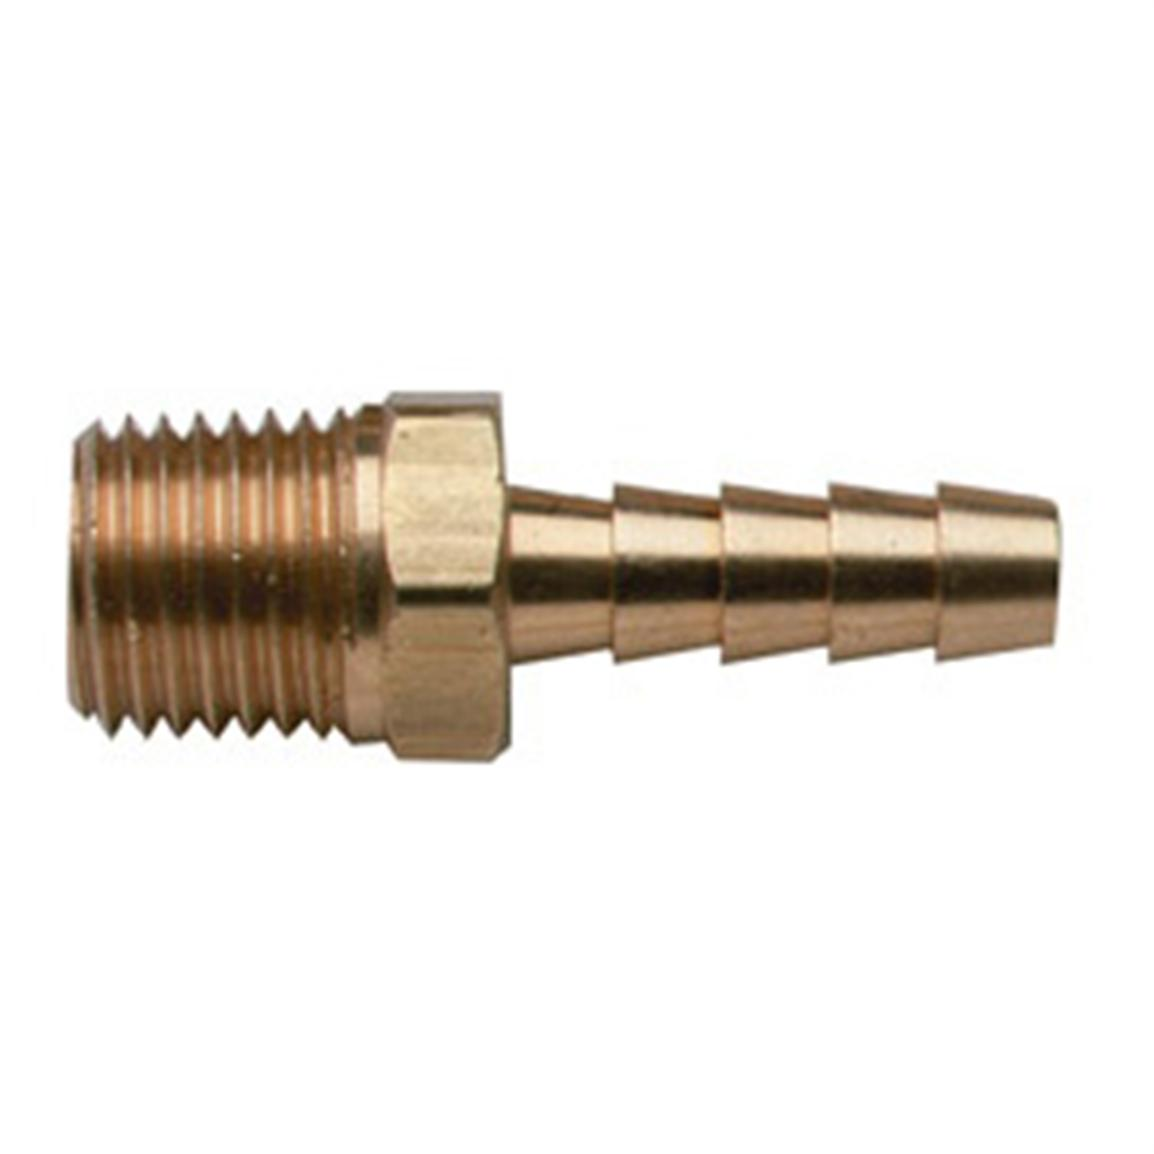 "Moeller® 1/8"" NPT x 1/4"" Hose Barbs with Male Threads"